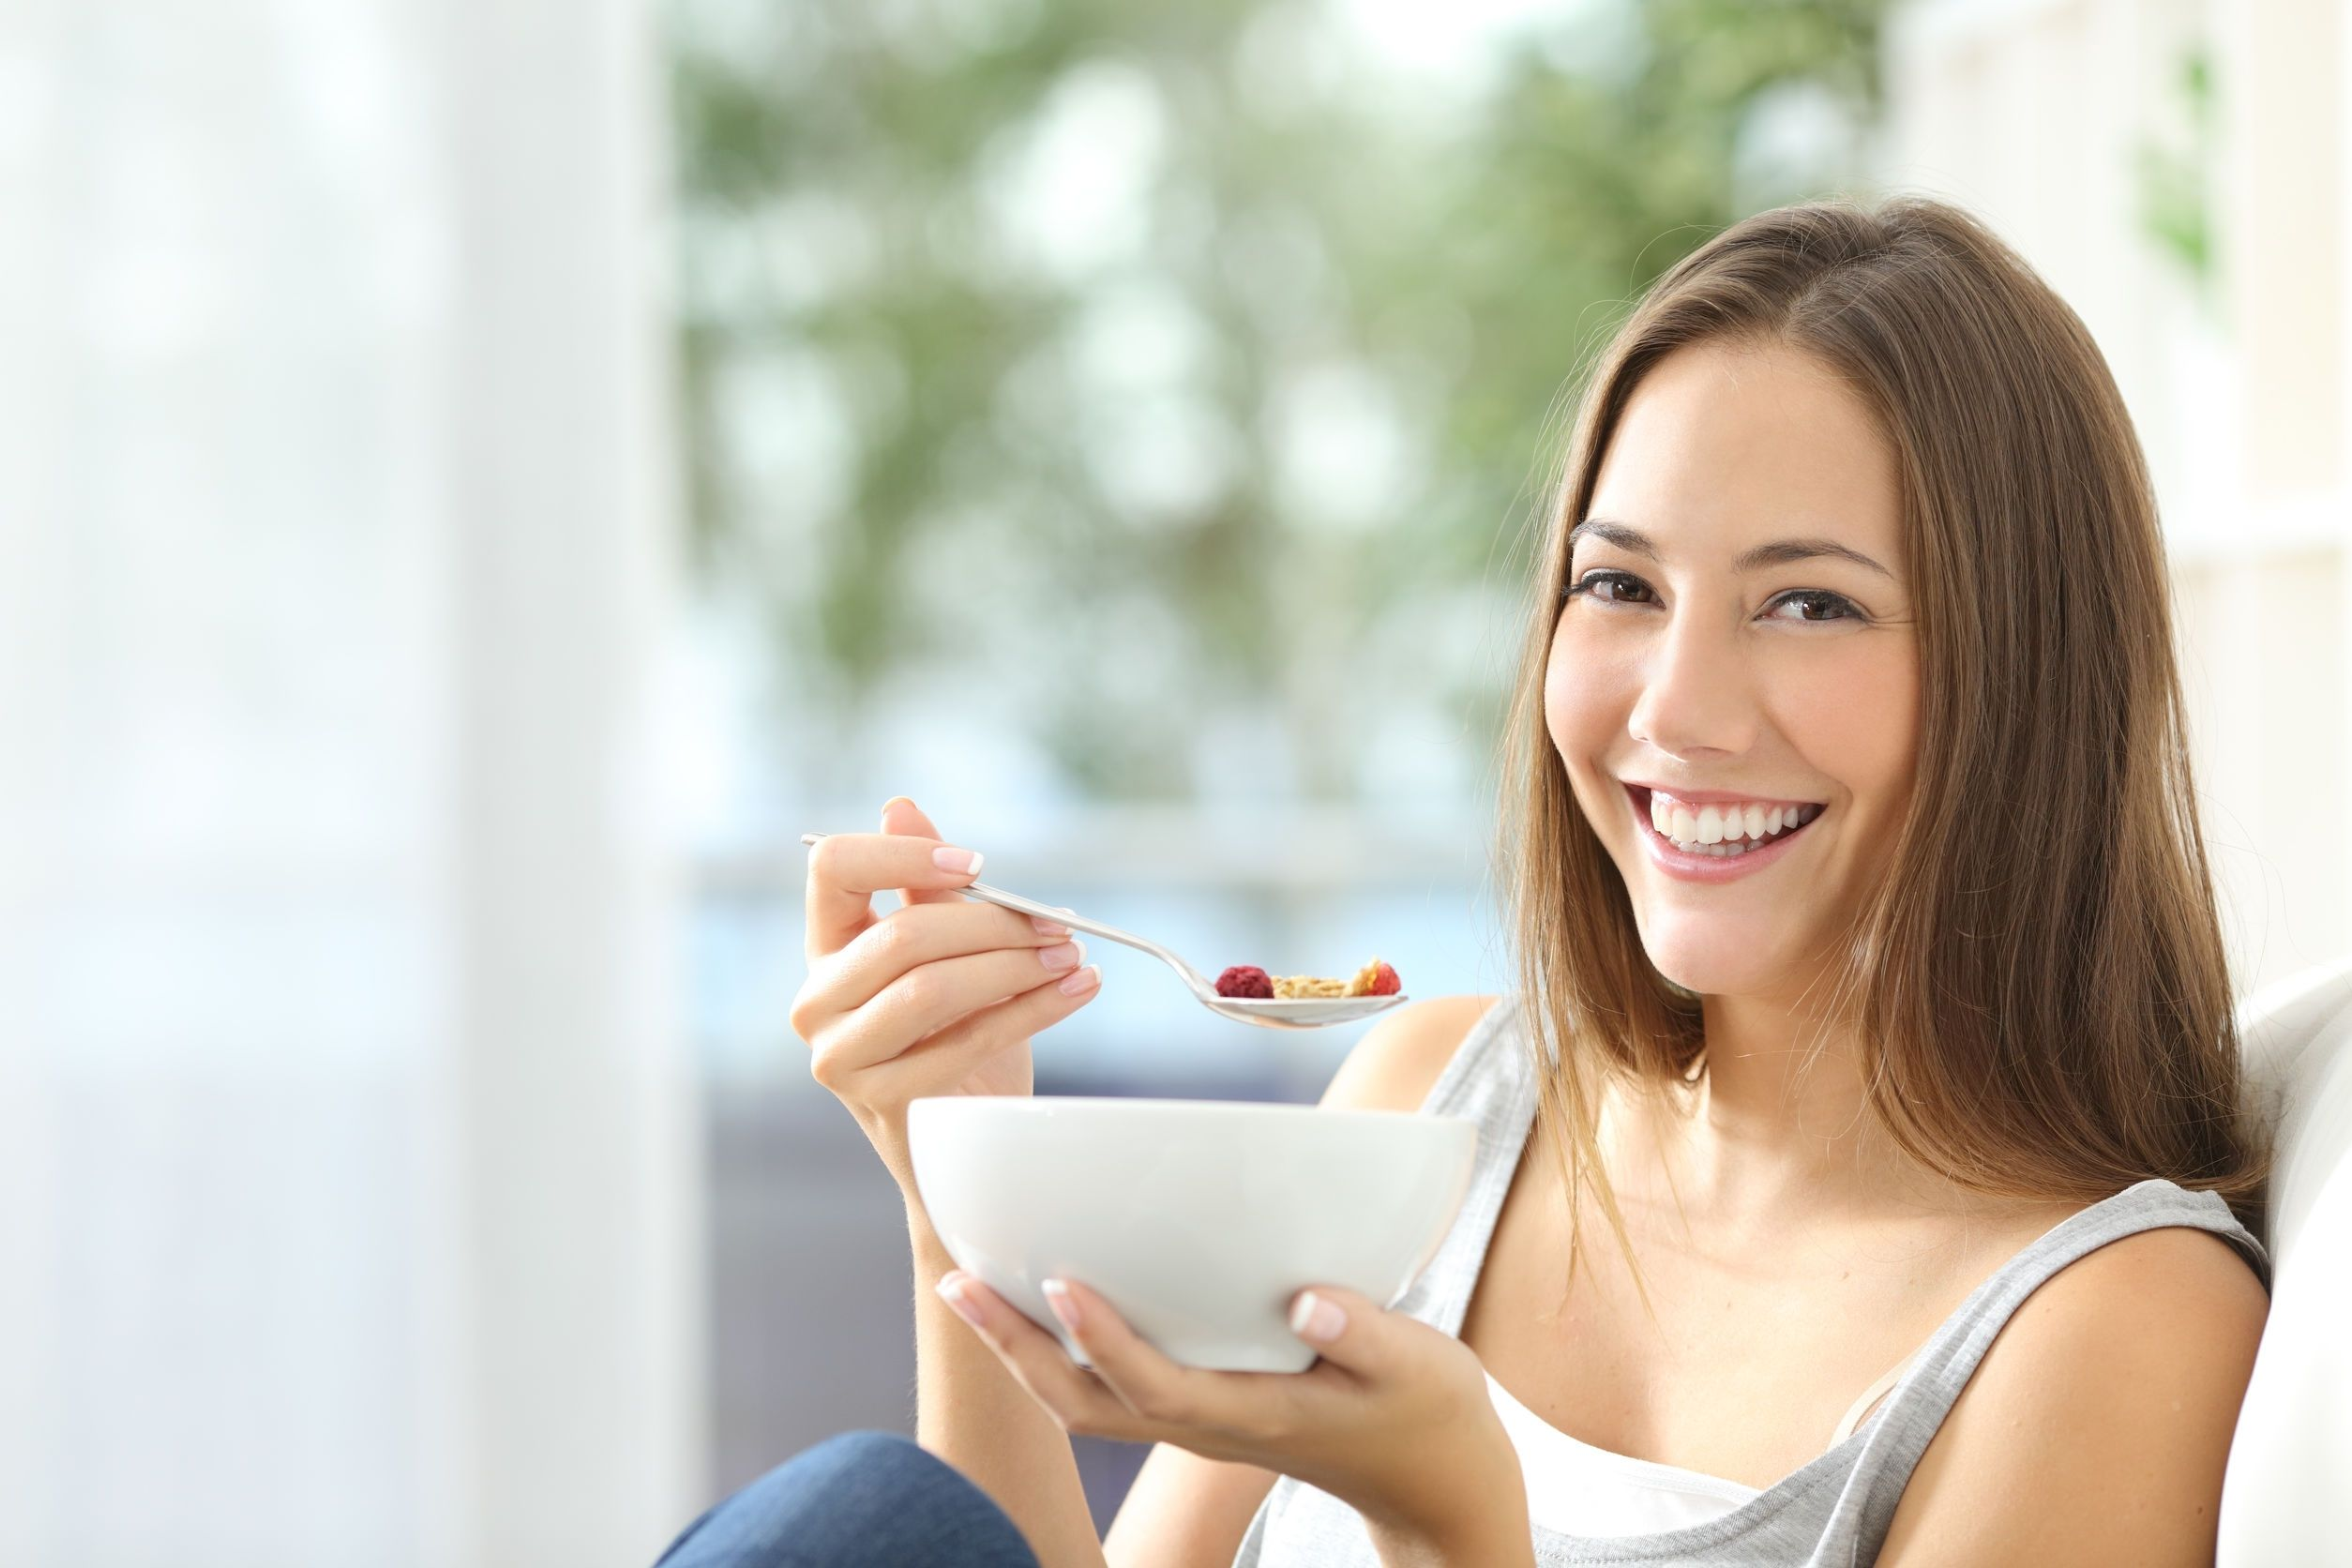 Woman happy to eat a healthy bowl of fruit and cereal.